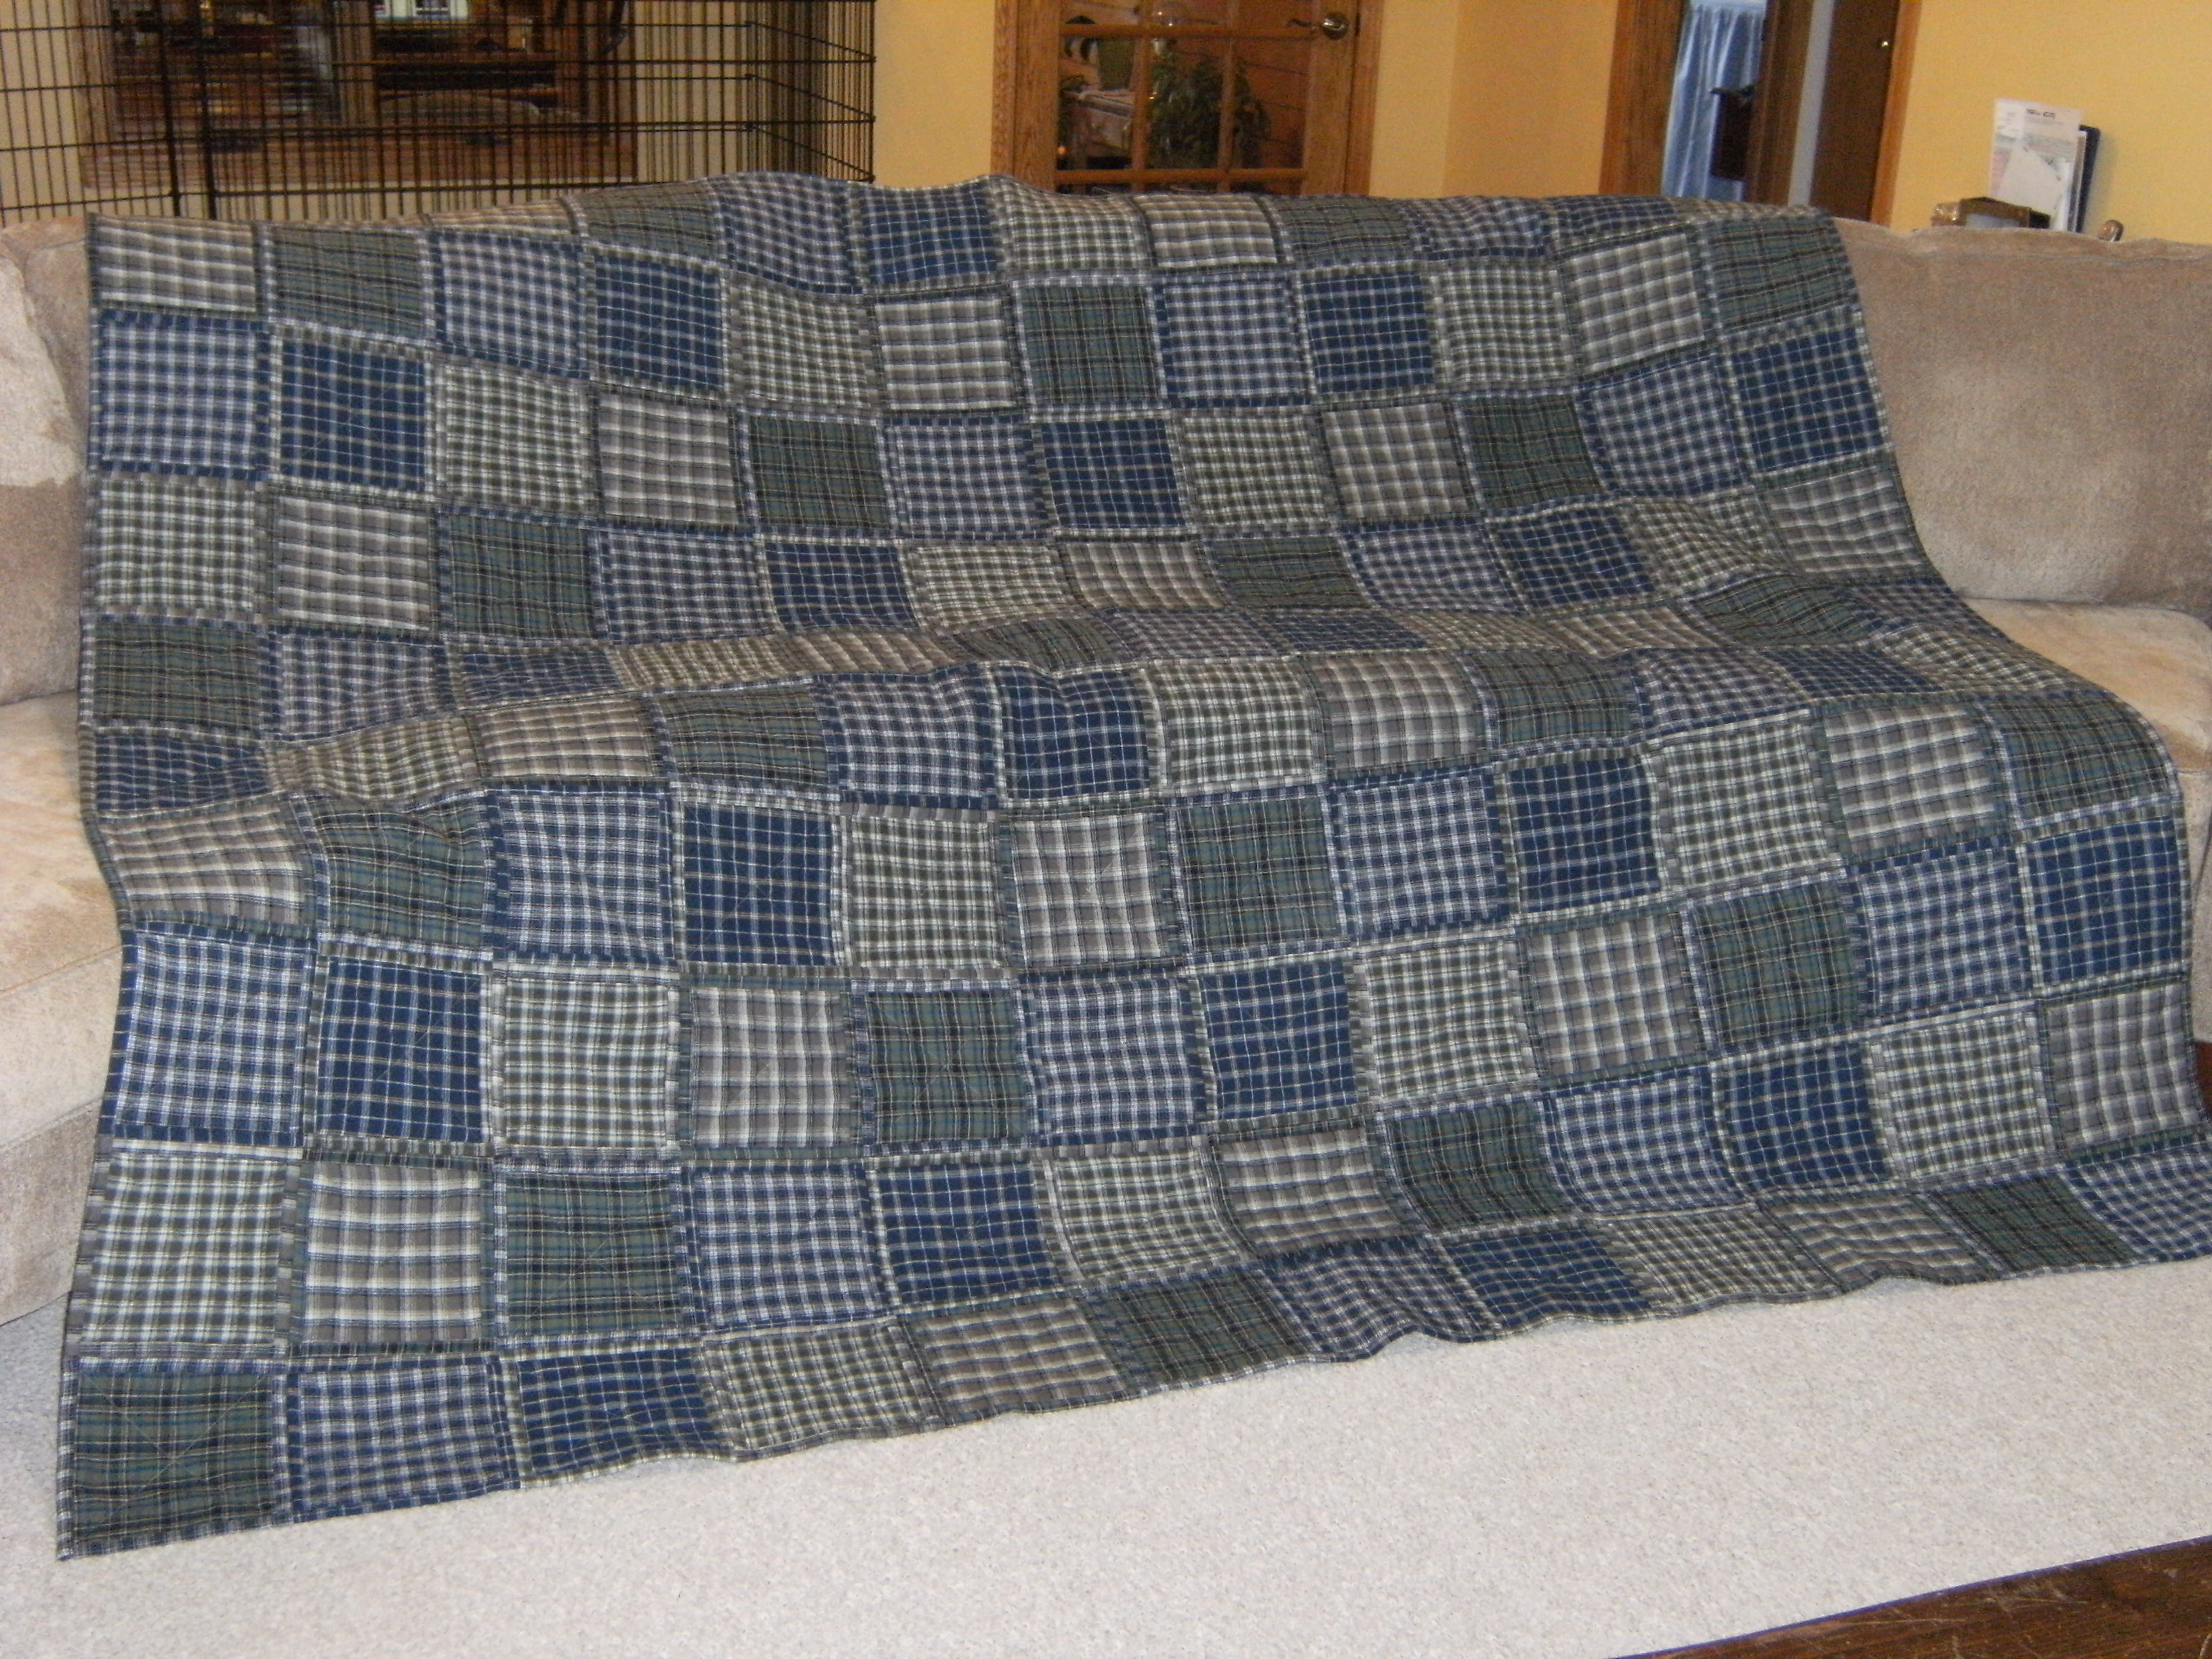 Name:  side one - Katie's flannel quilt.JPG Views: 3008 Size:  1.54 MB